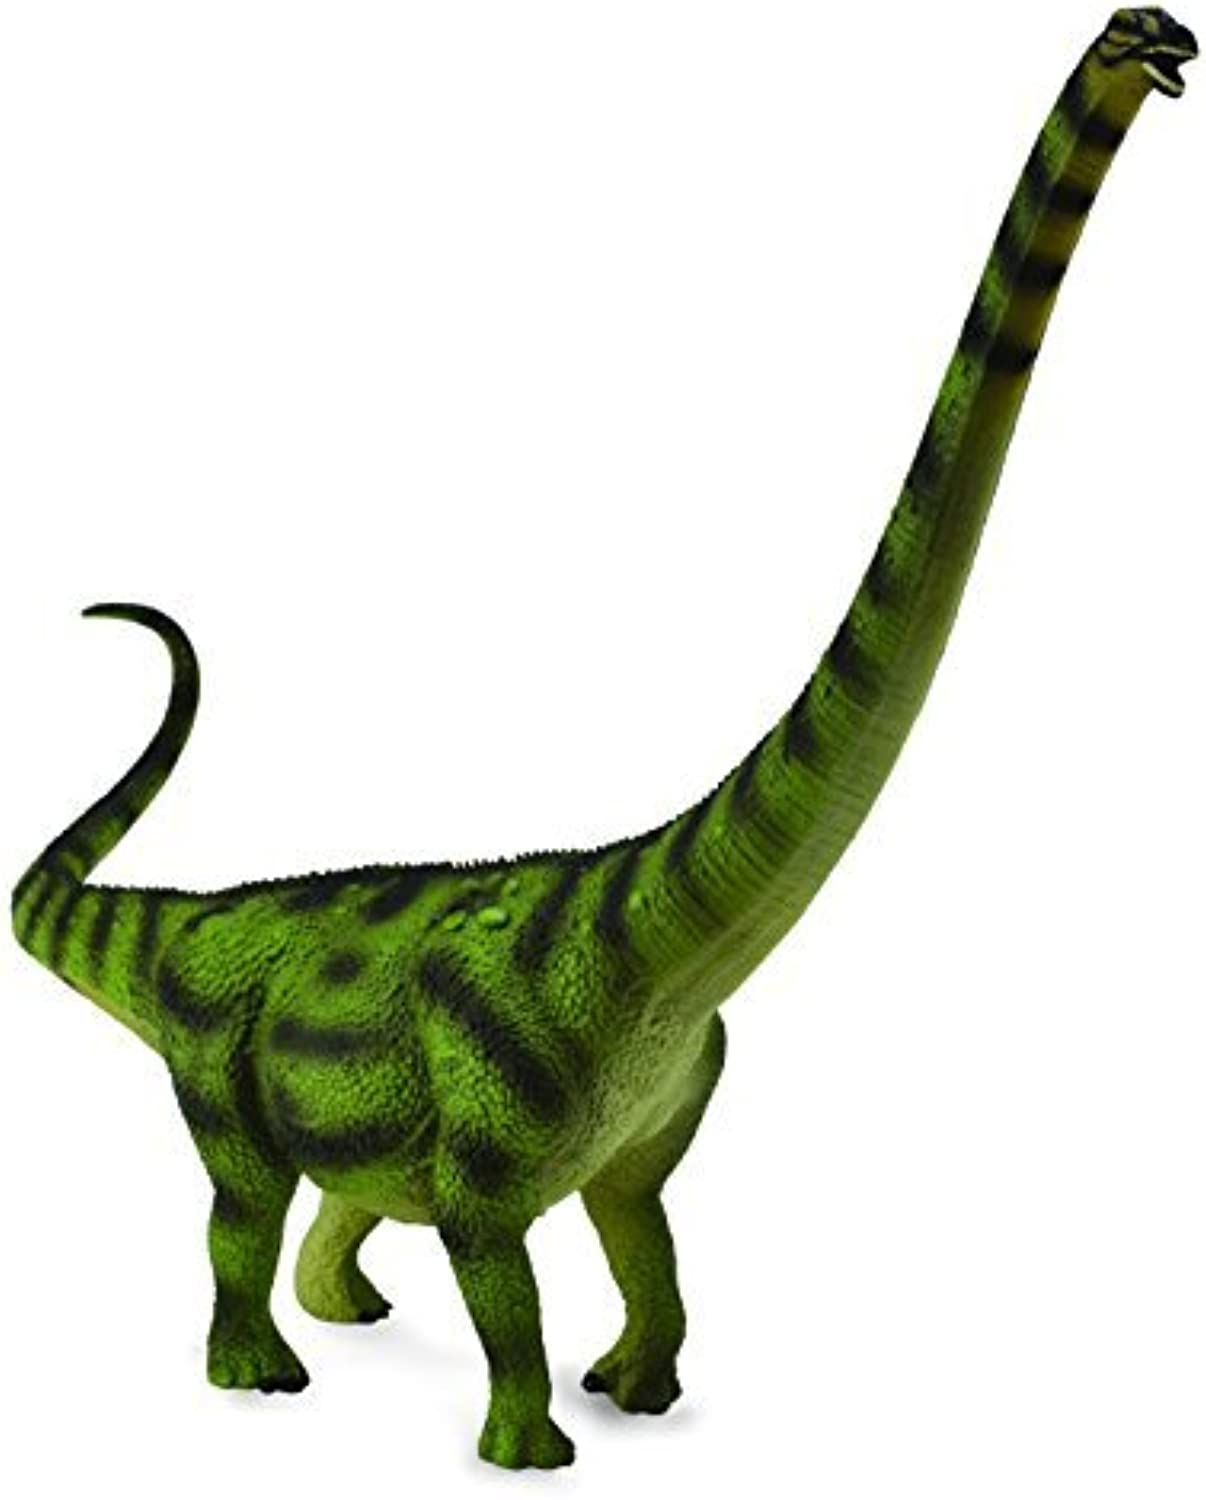 DAXIATITAN DINOSAUR CollectA NEW 2015 MODEL Excellent Quality by CollectA